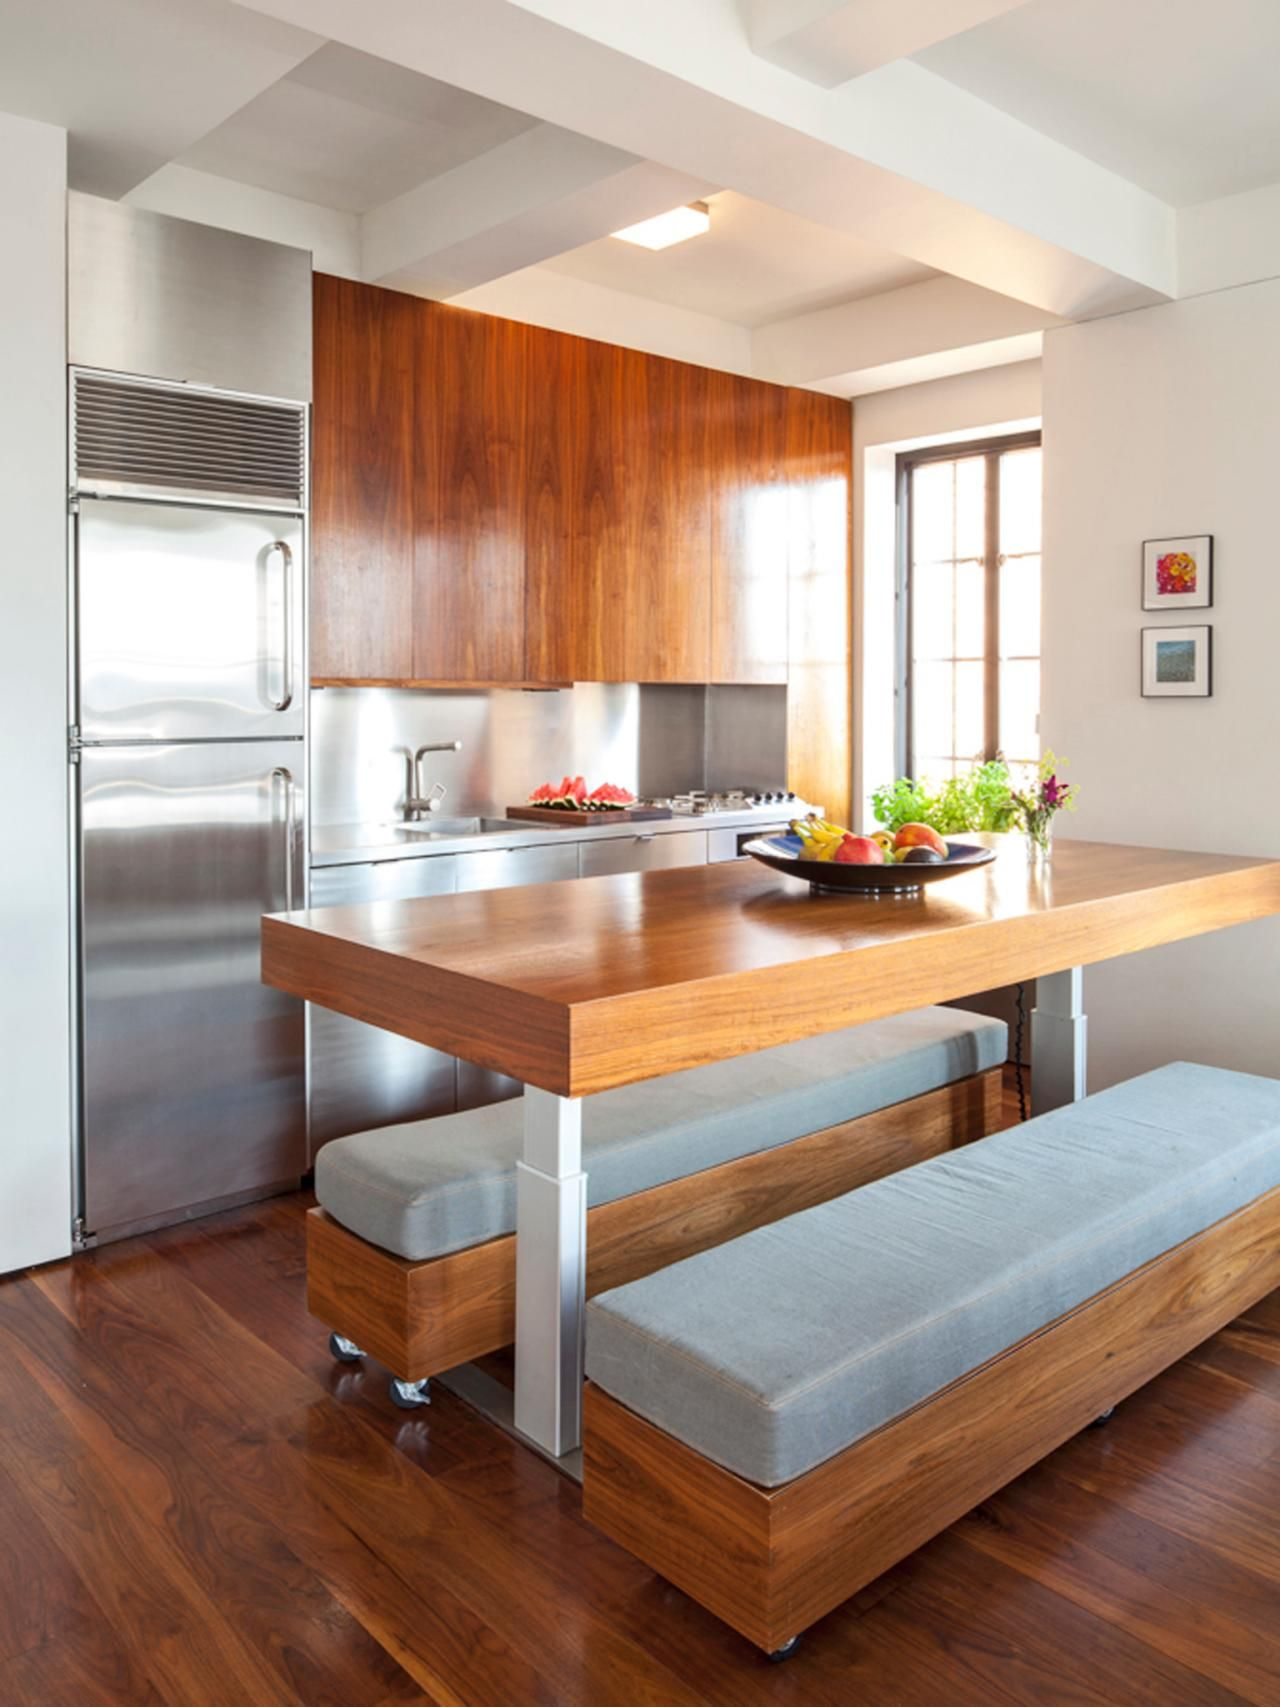 choosing the moveable kitchen islands. Movable Kitchen Island Bench - Google Search Choosing The Moveable Islands D